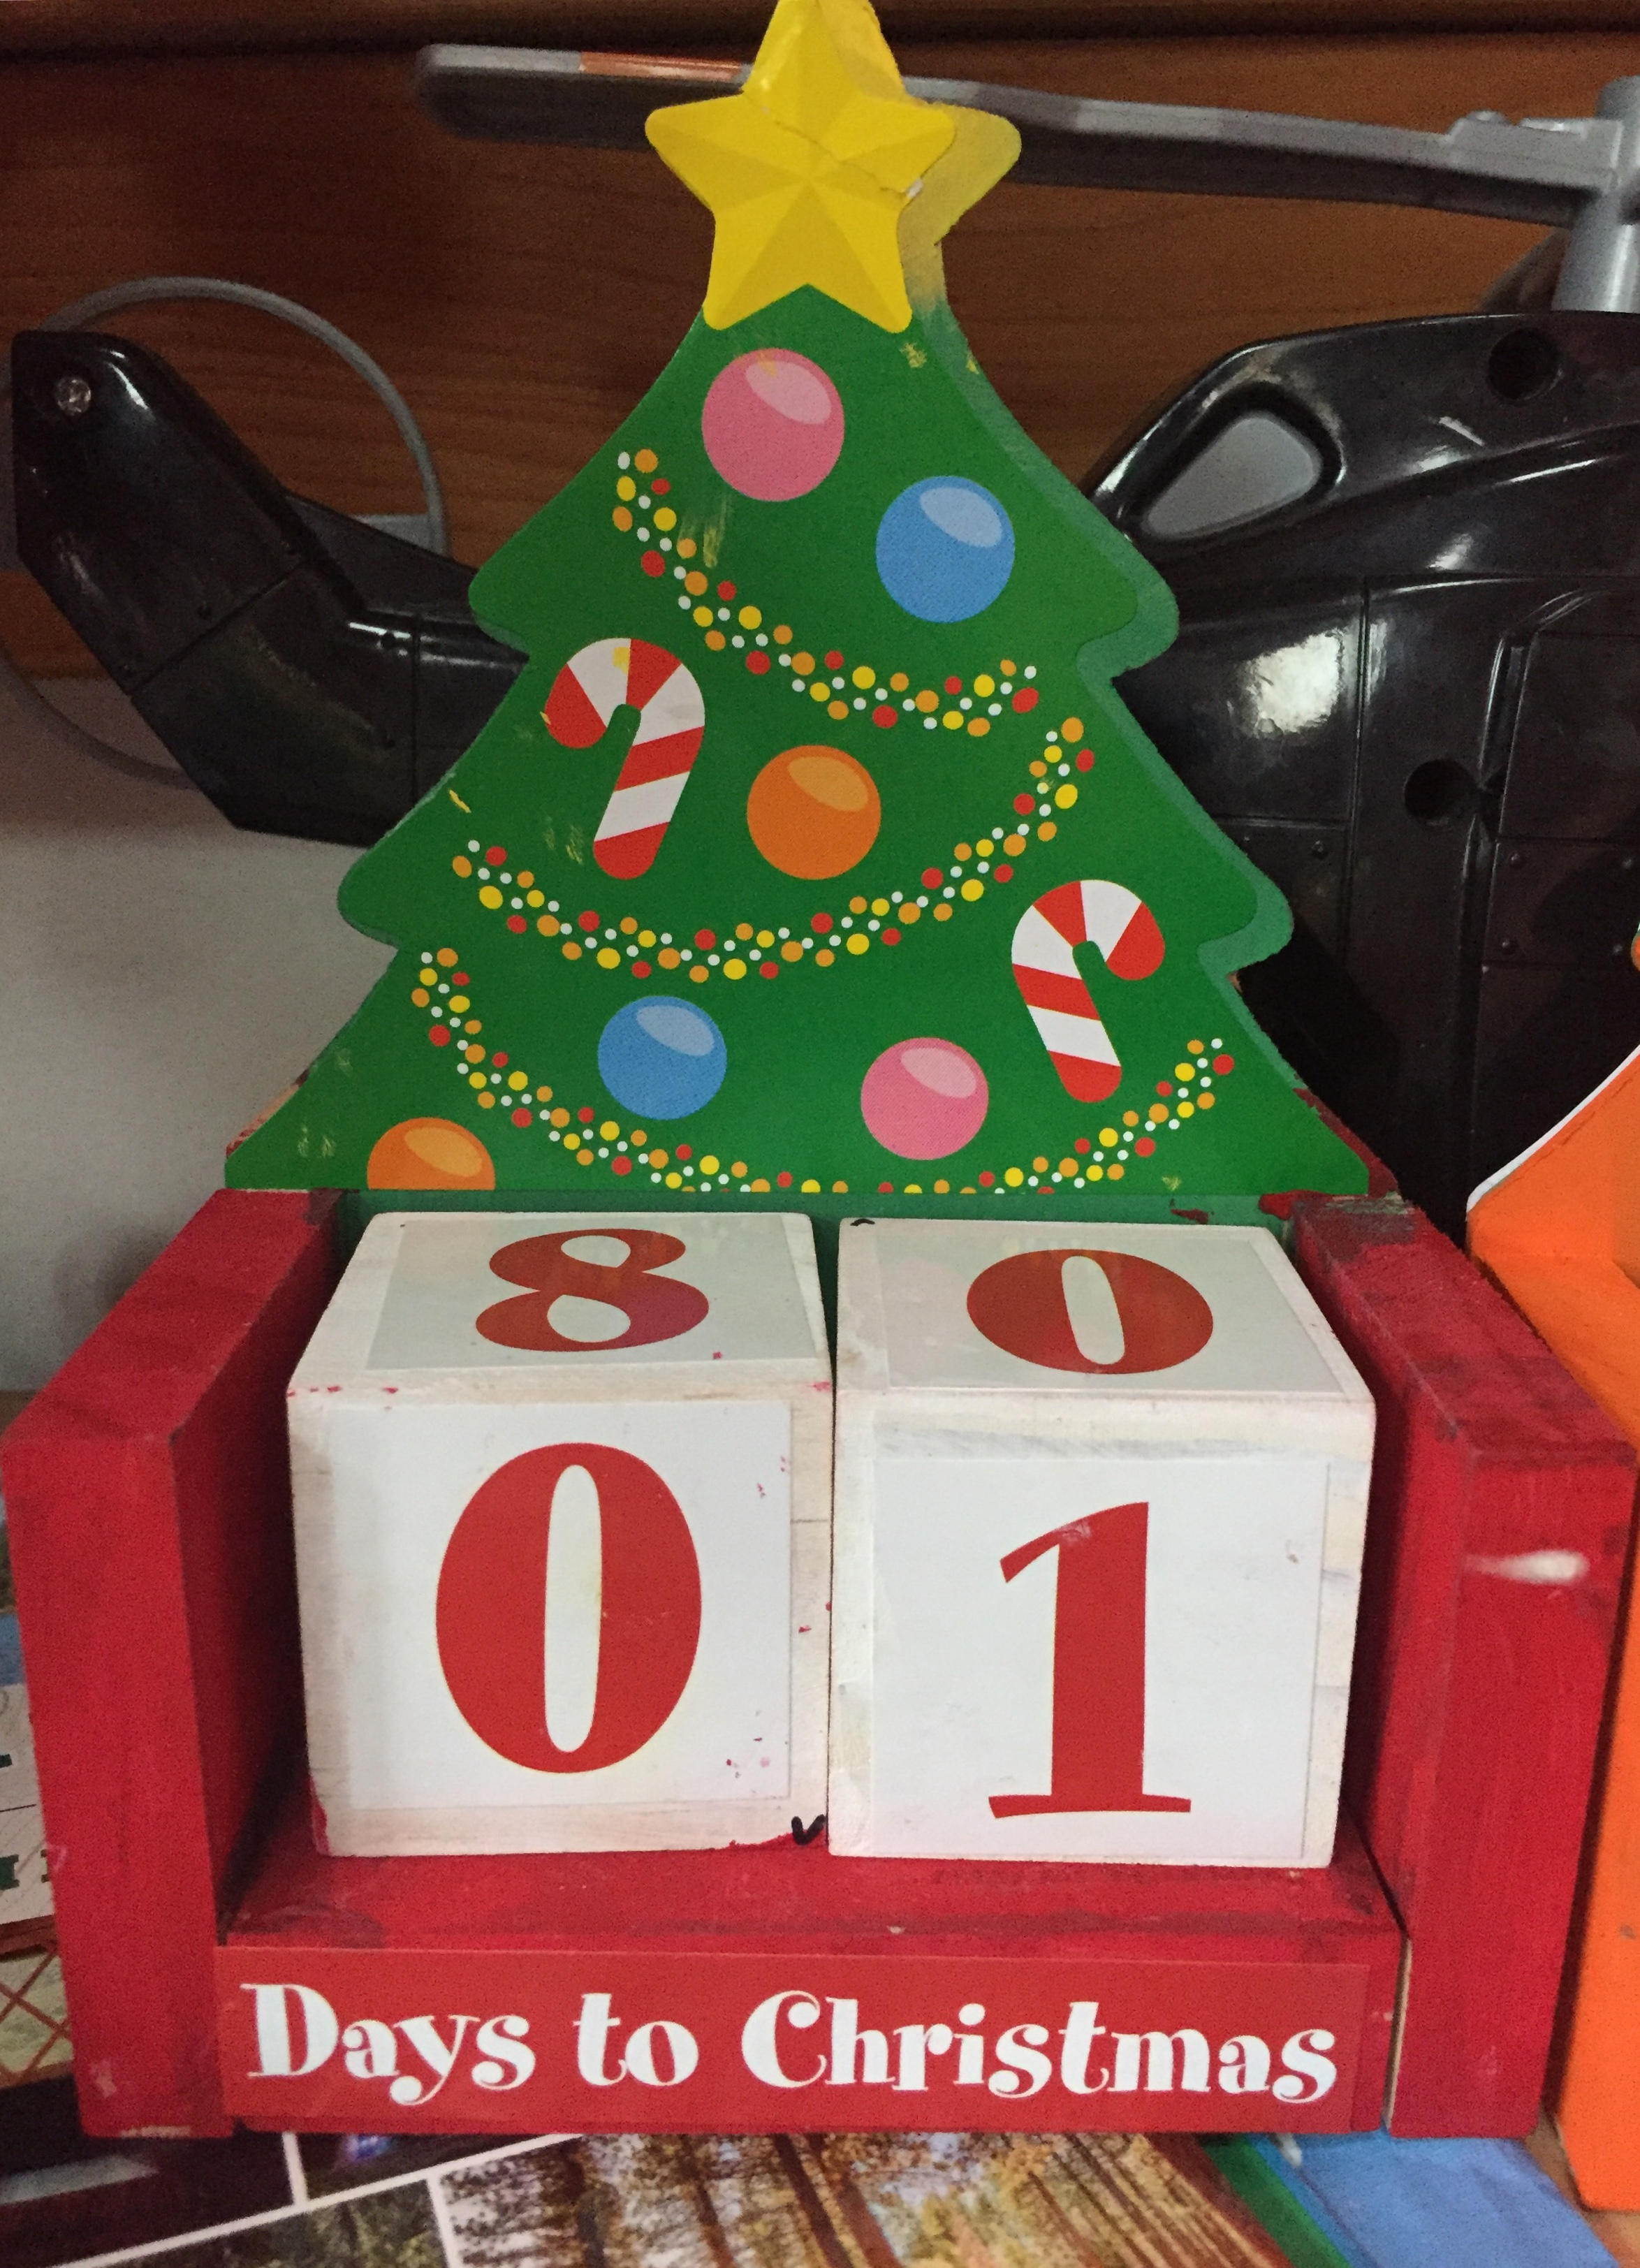 Christmas countdown number blocks in wooden Christmas tree stand showing 1 day left